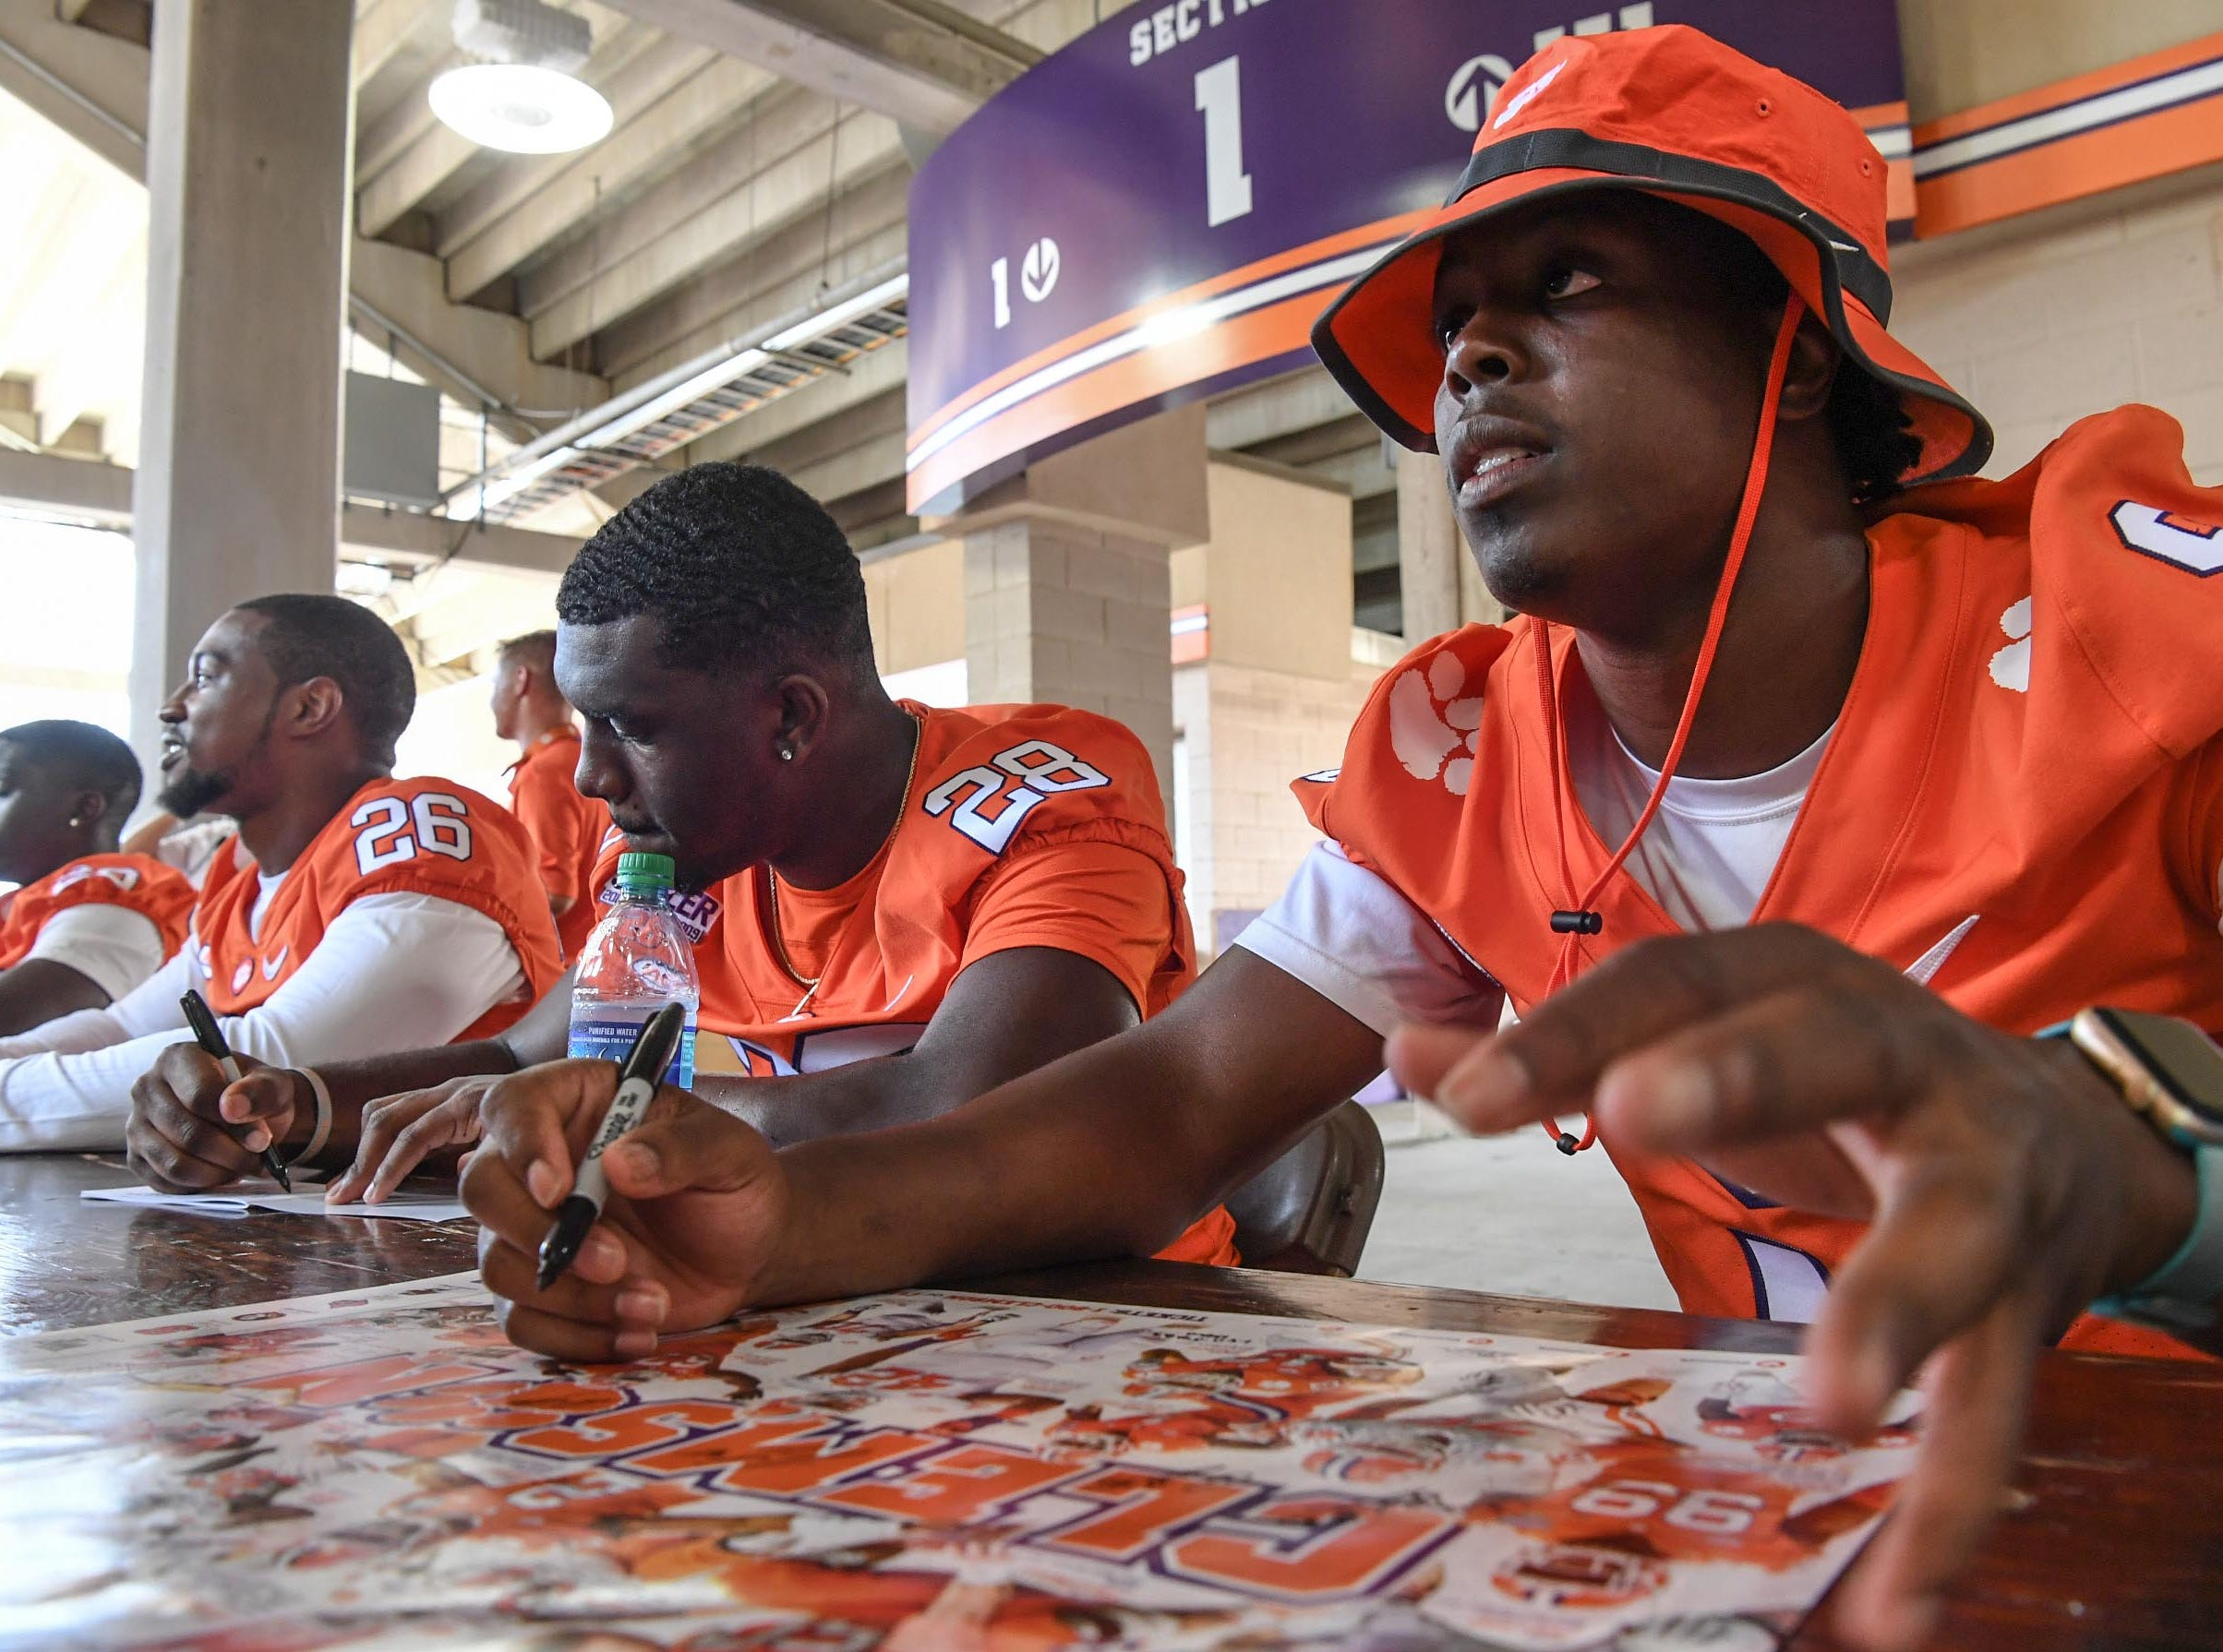 Clemson running back Tavien Feaster (28), left, and Travis Etienne (9), right, during Clemson University football fan day in Memorial Stadium on Sunday, August 12, 2018.